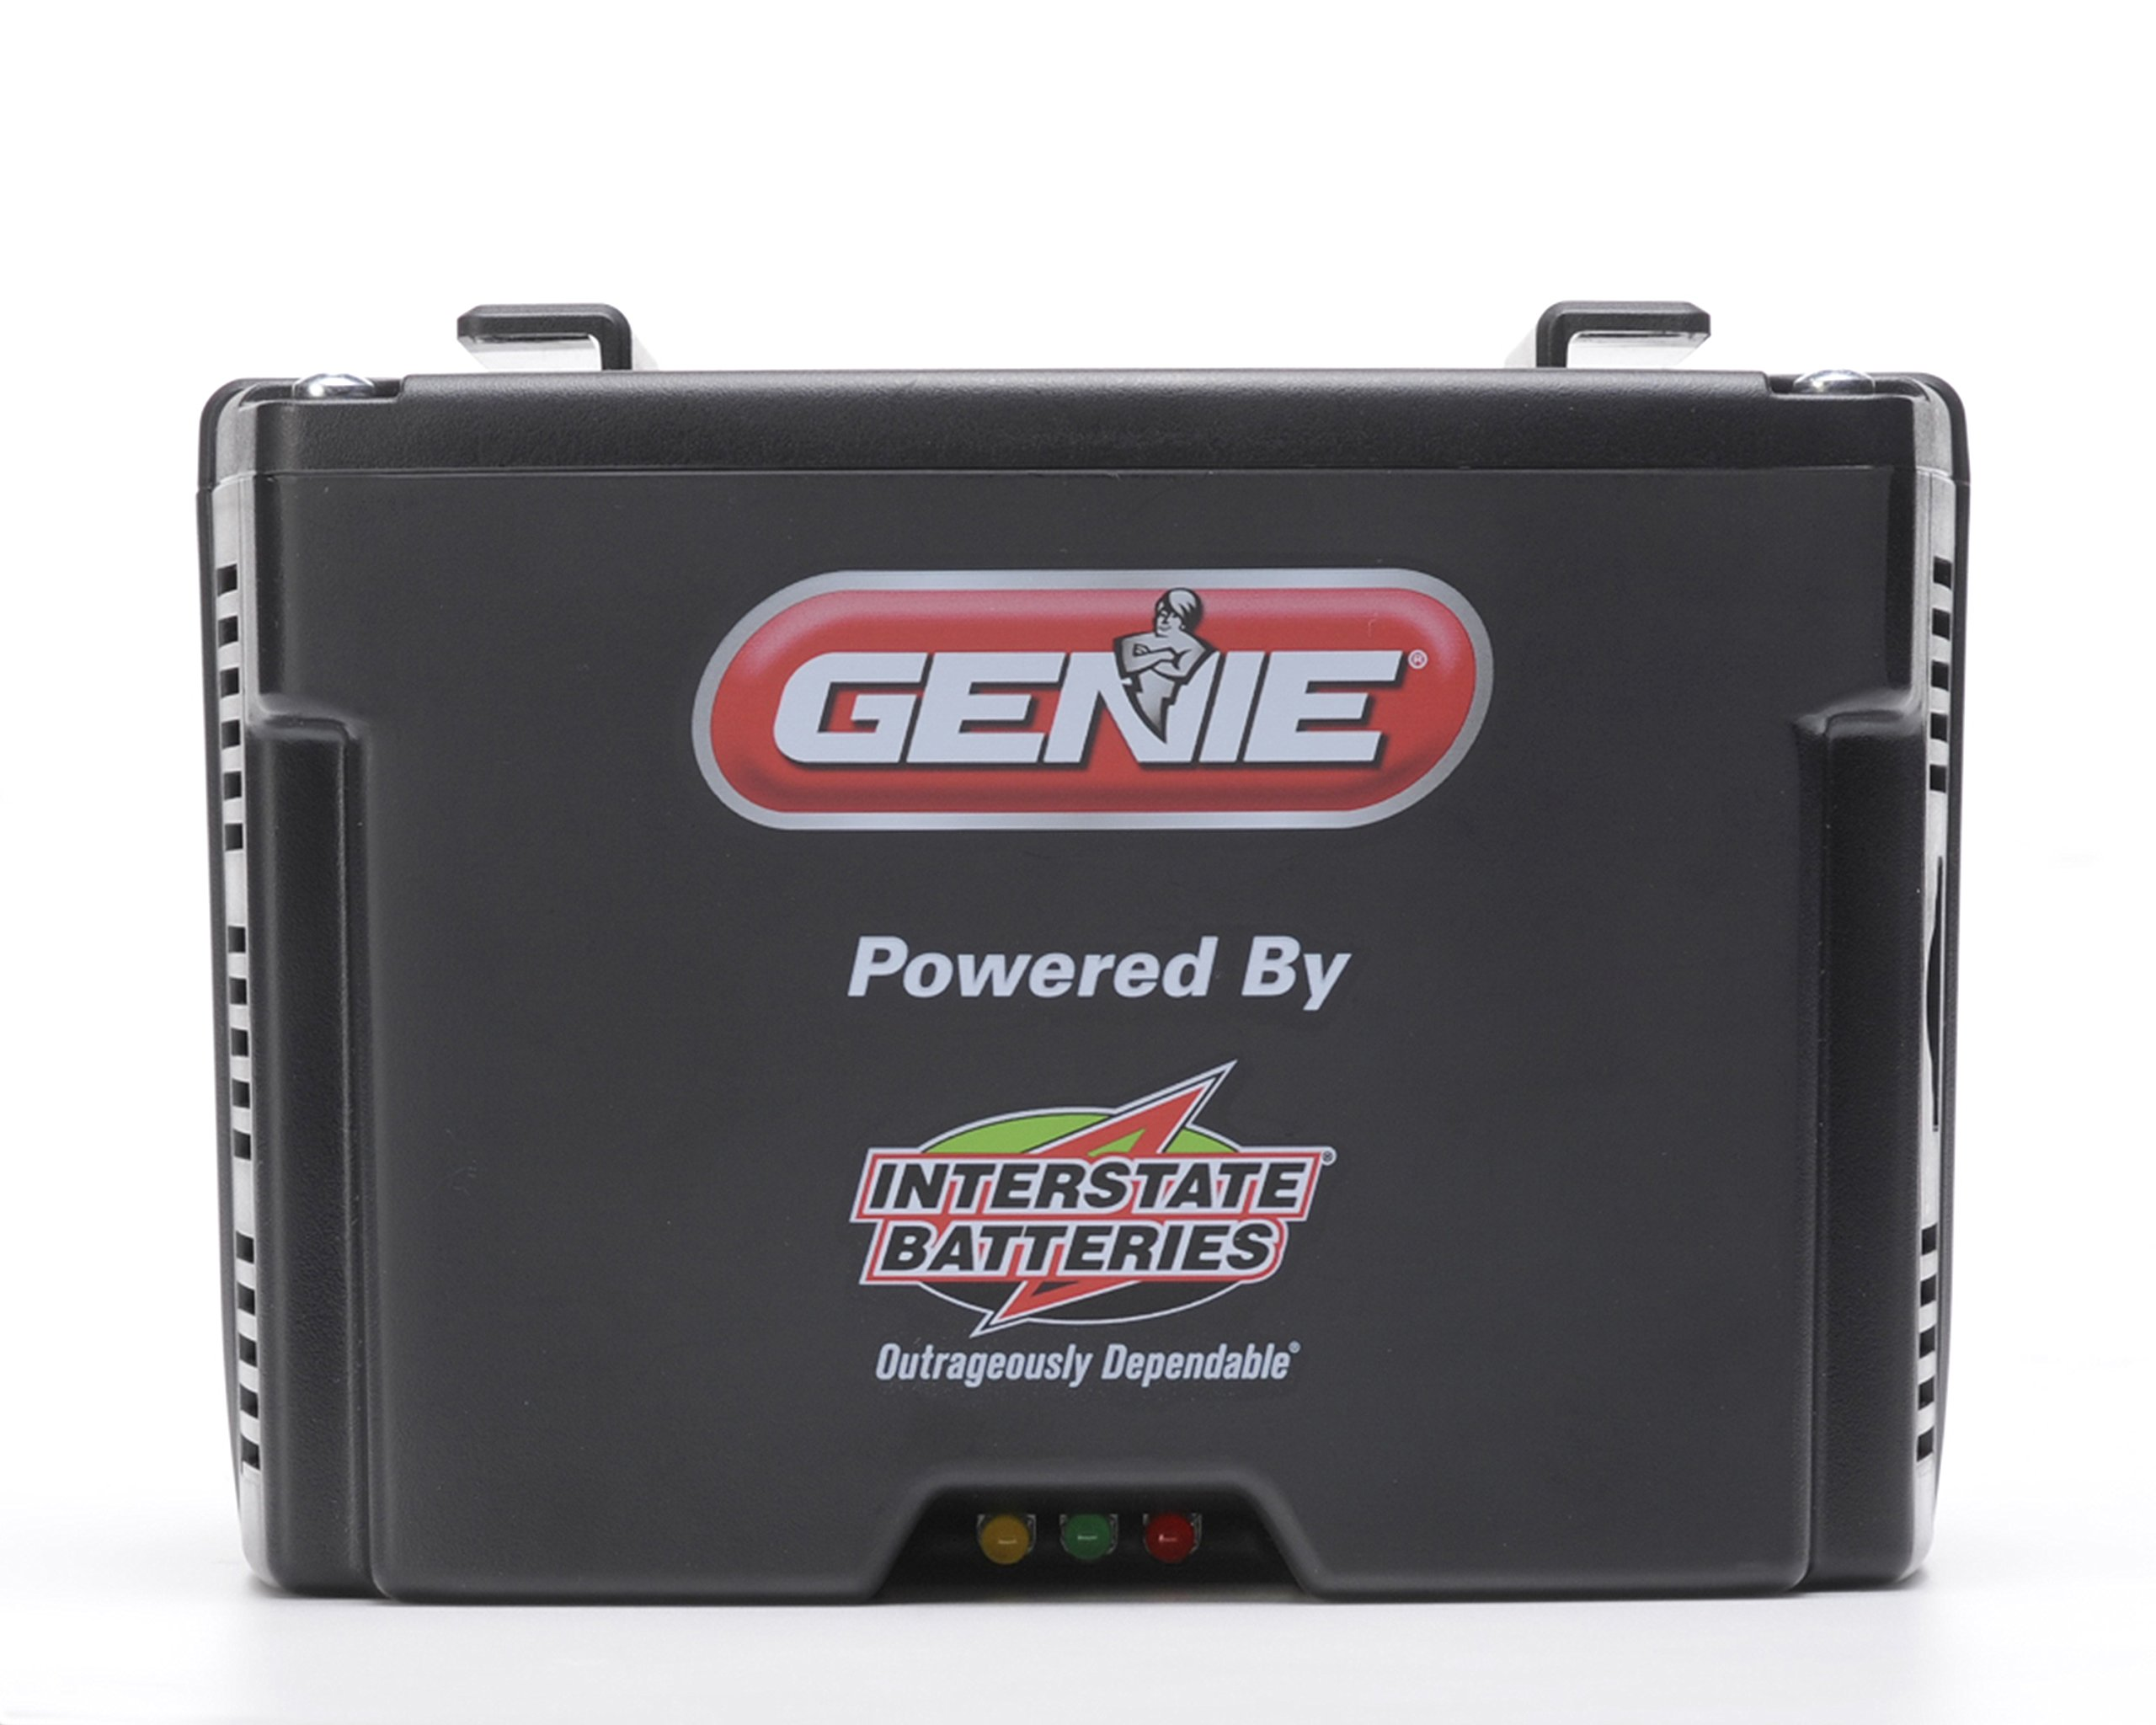 Genie Battery Backup Unit – Operate your Garage Door Opener and Safety / Security Features During Power Outages – GBB-BX